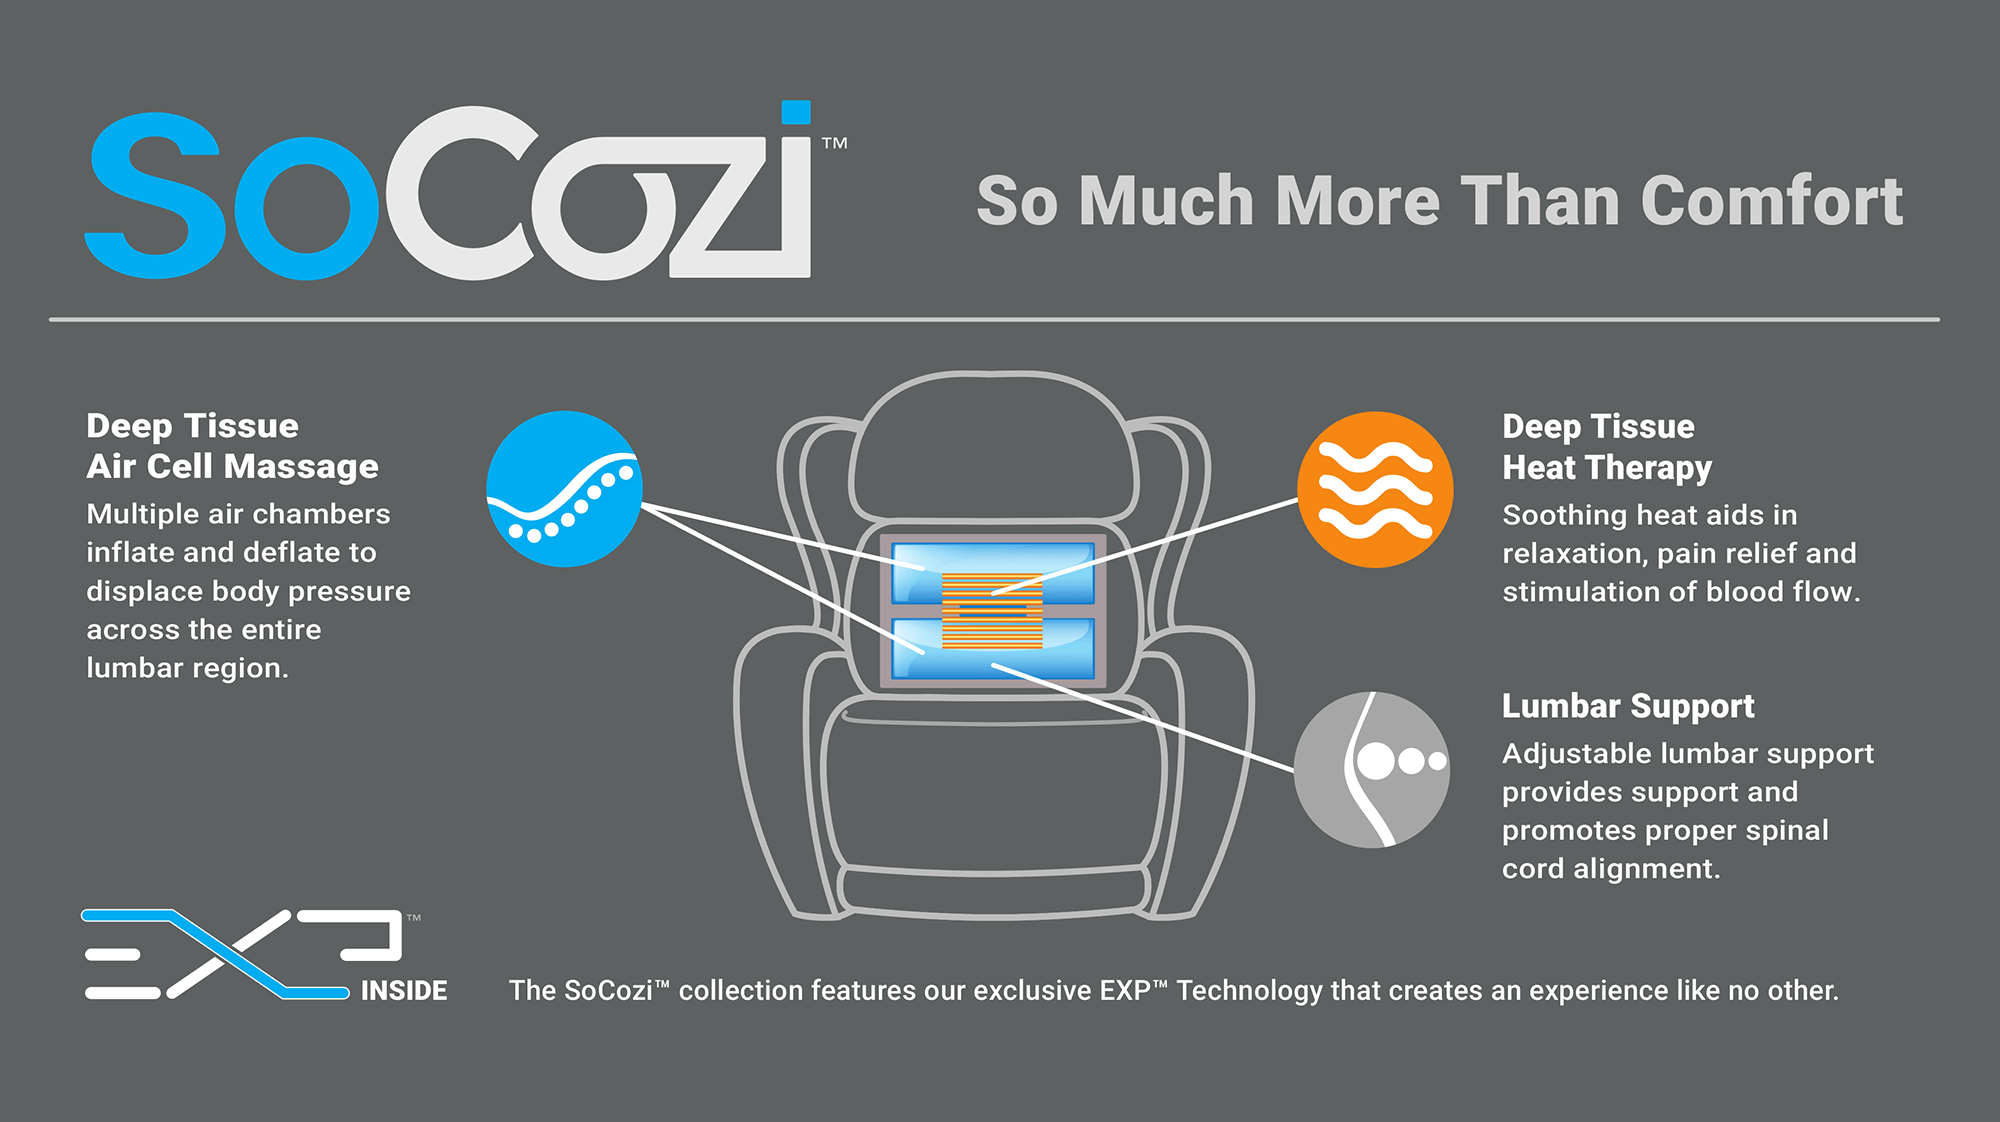 SoCozi is so much more than comfort! Deep tissue, heat therapy, lumbar support, and more!